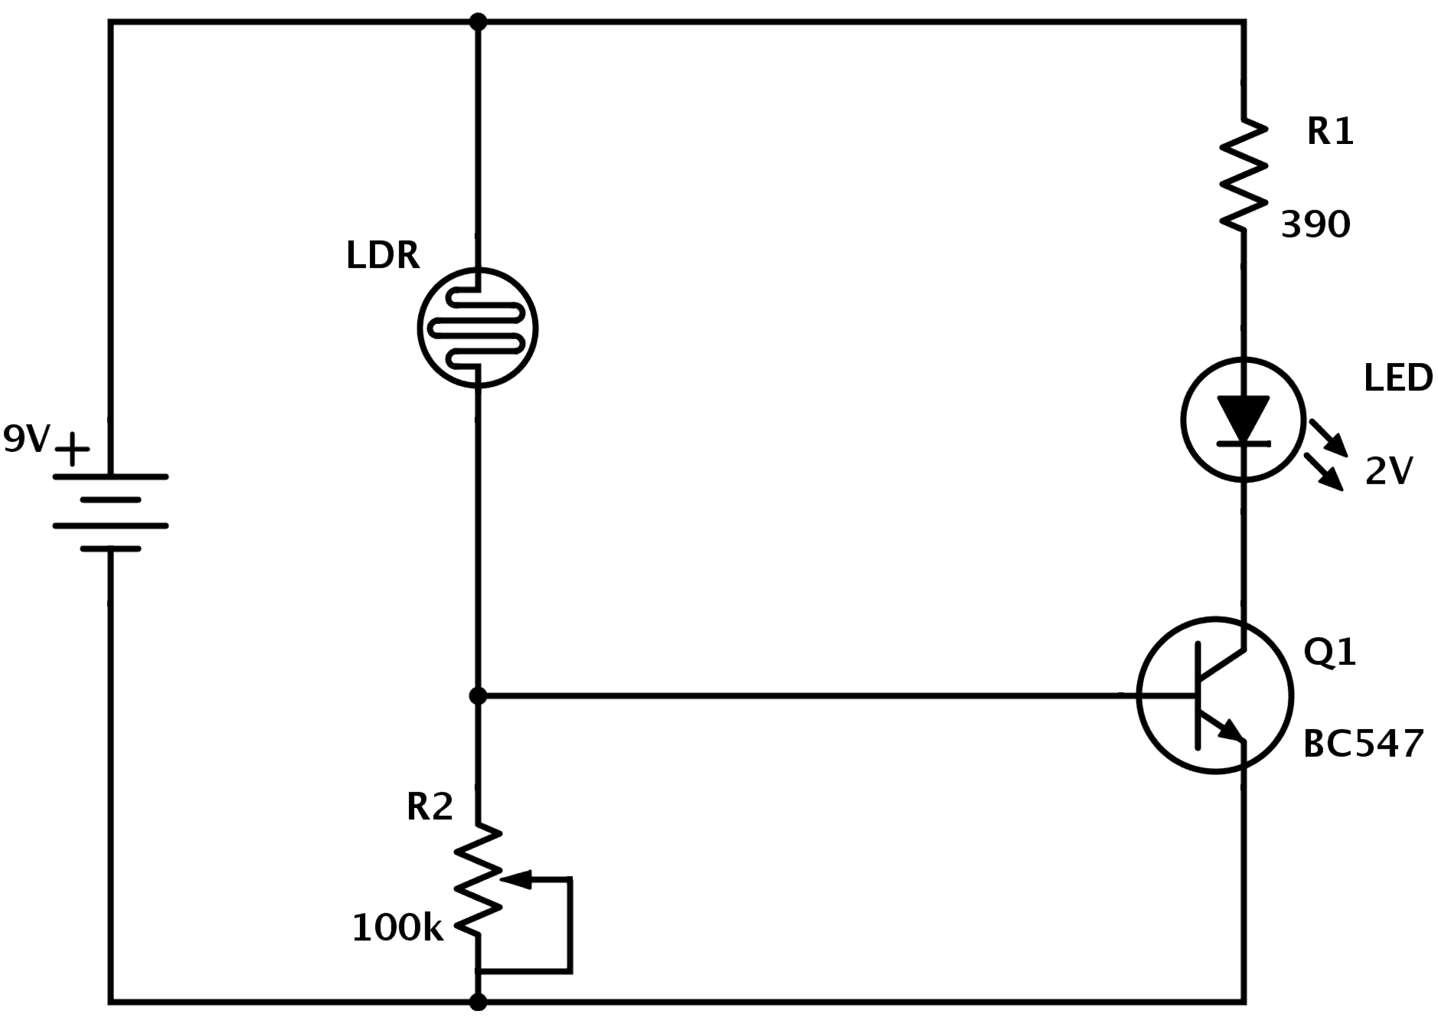 hight resolution of simple schematic wiring diagram wiring diagram todays rh 13 11 12 1813weddingbarn com electrical diagram schematic symbols electrical diagram schematic